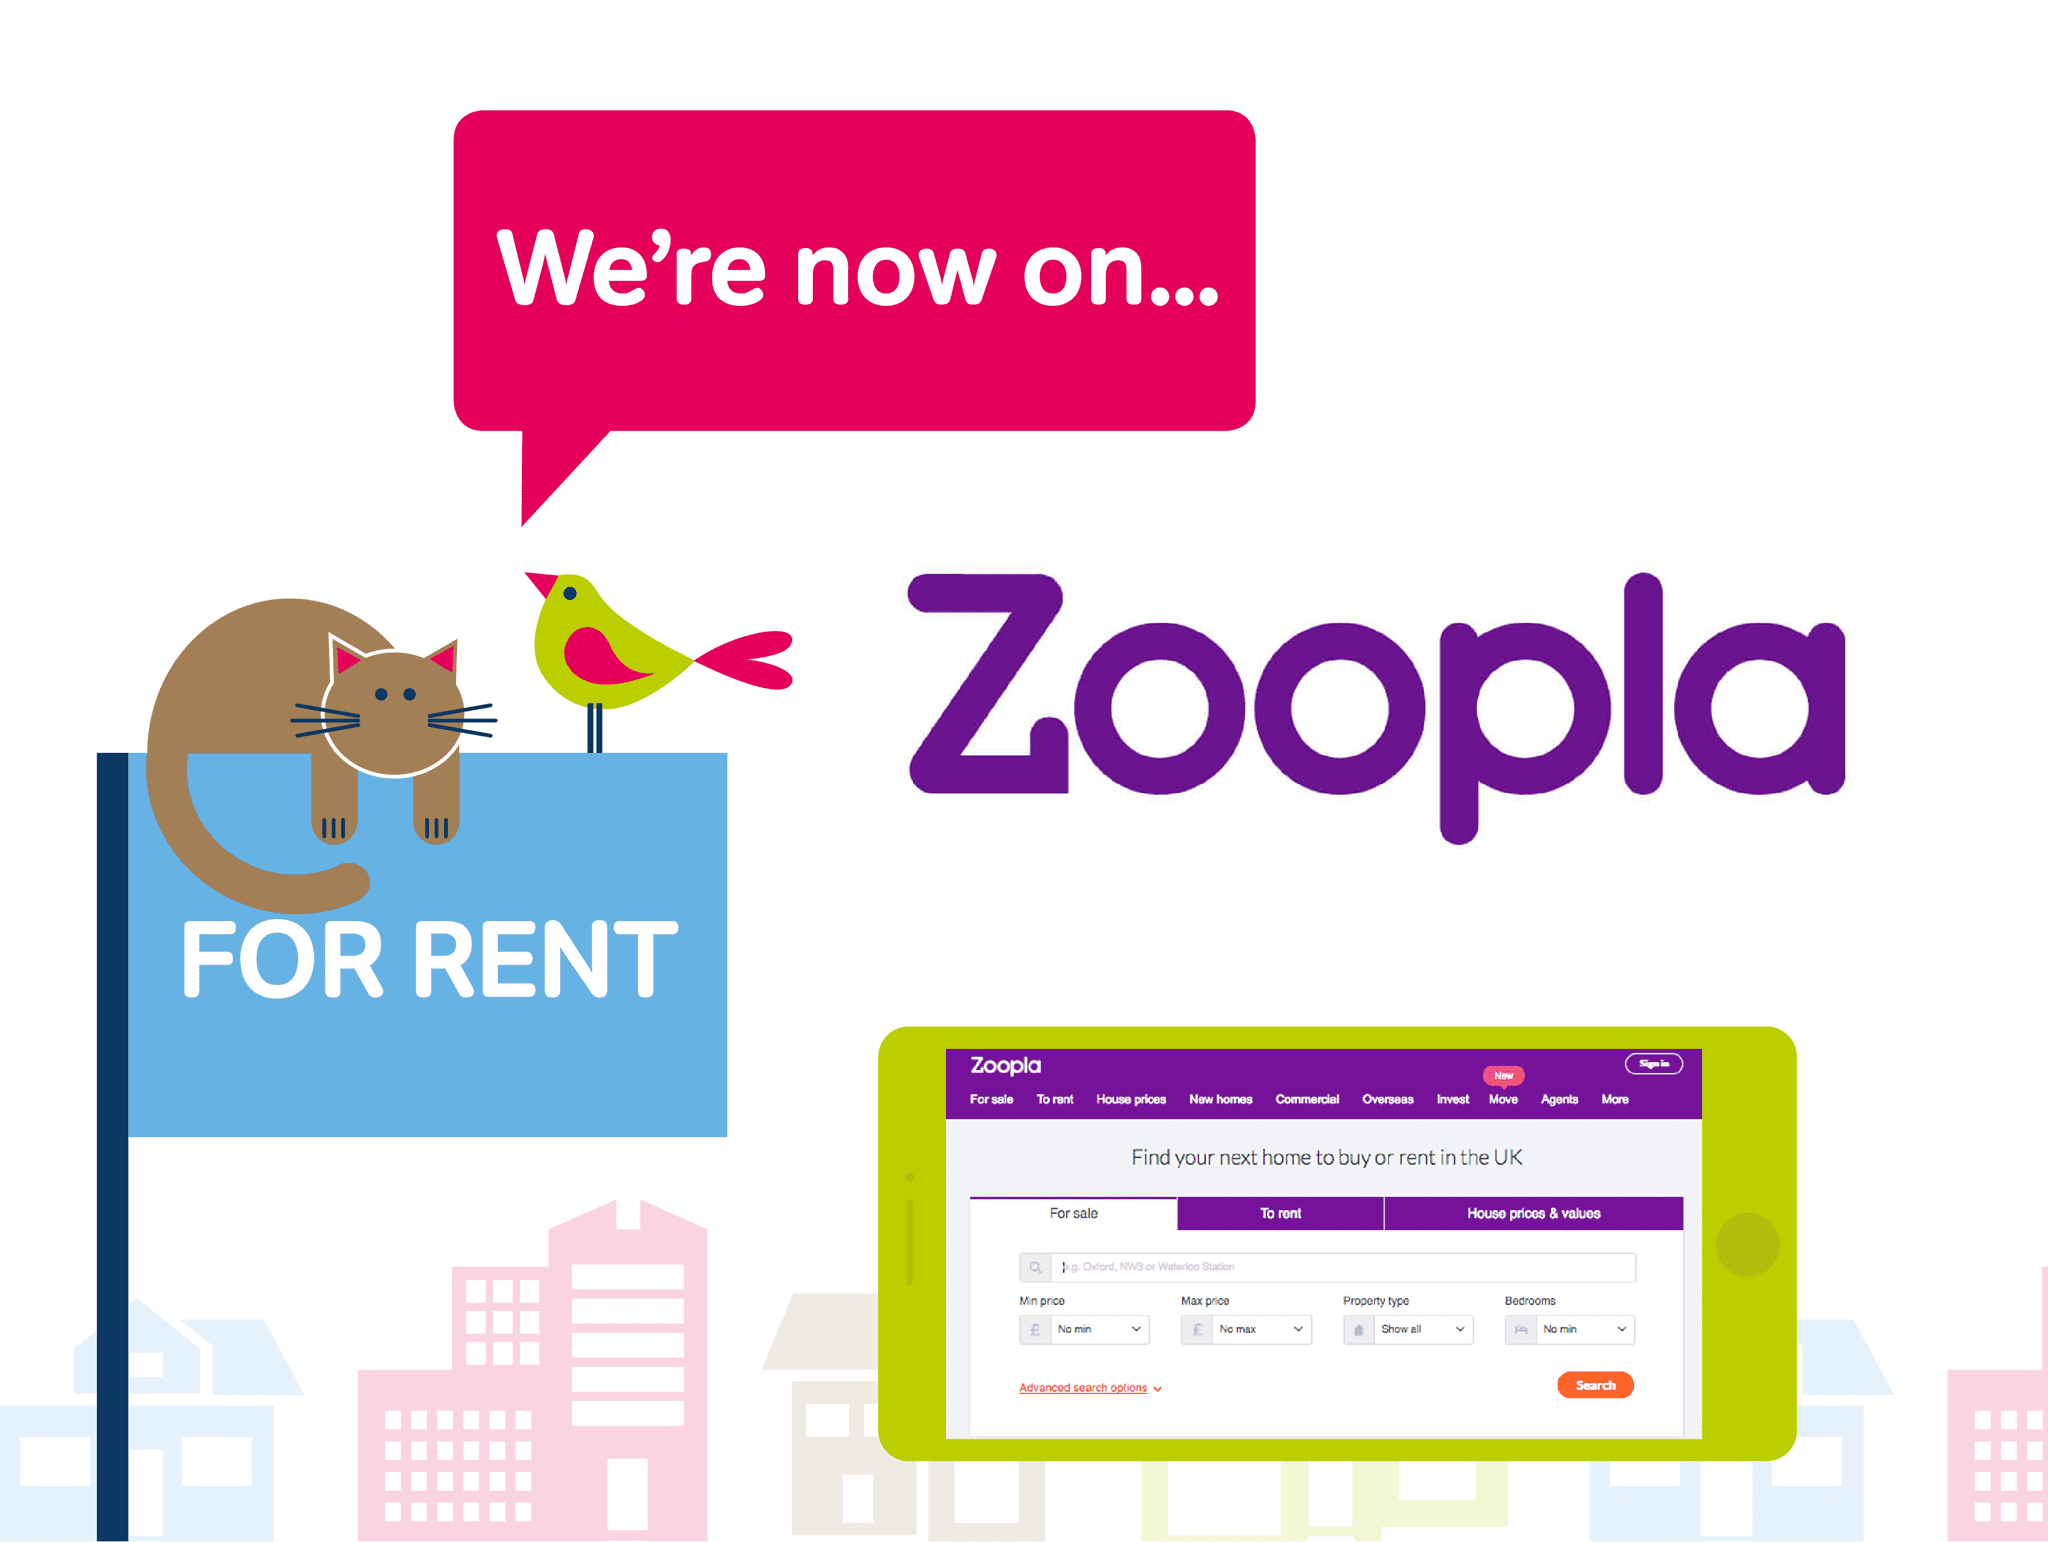 McDonald Property Rentals on Zoopla